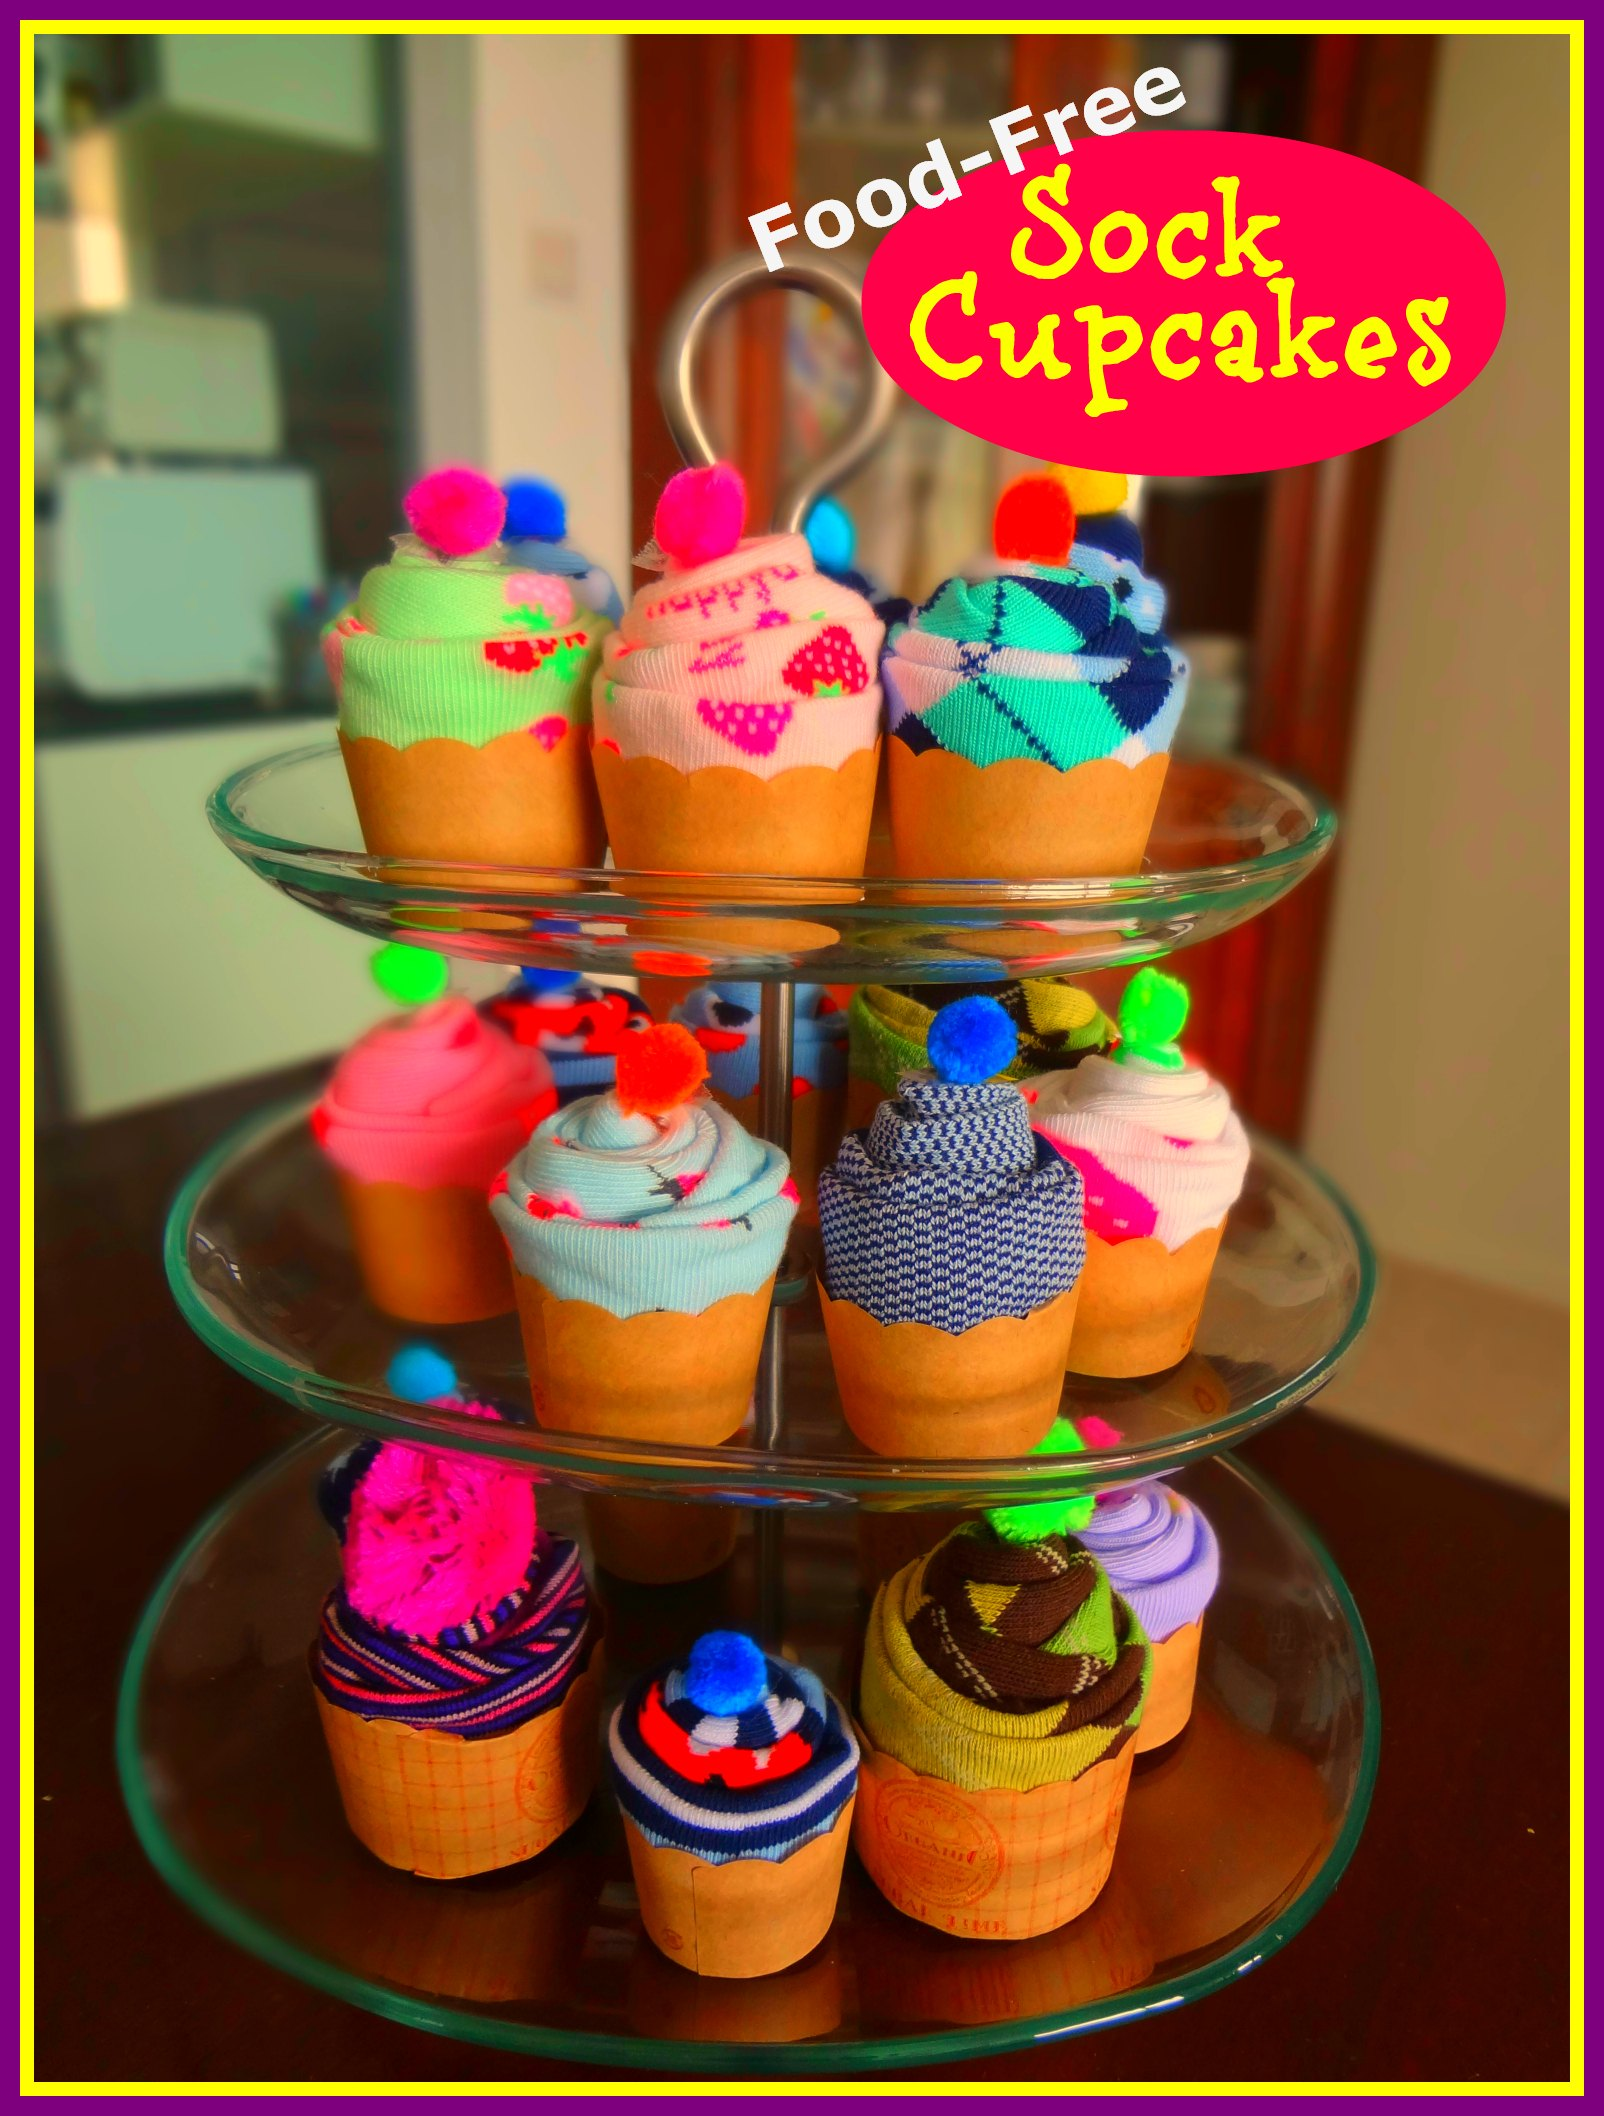 ' ' from the web at 'http://www.supermommy.com.sg/wp-content/uploads/2013/06/Sock-Cupcakes-1st-Pic1.jpg'